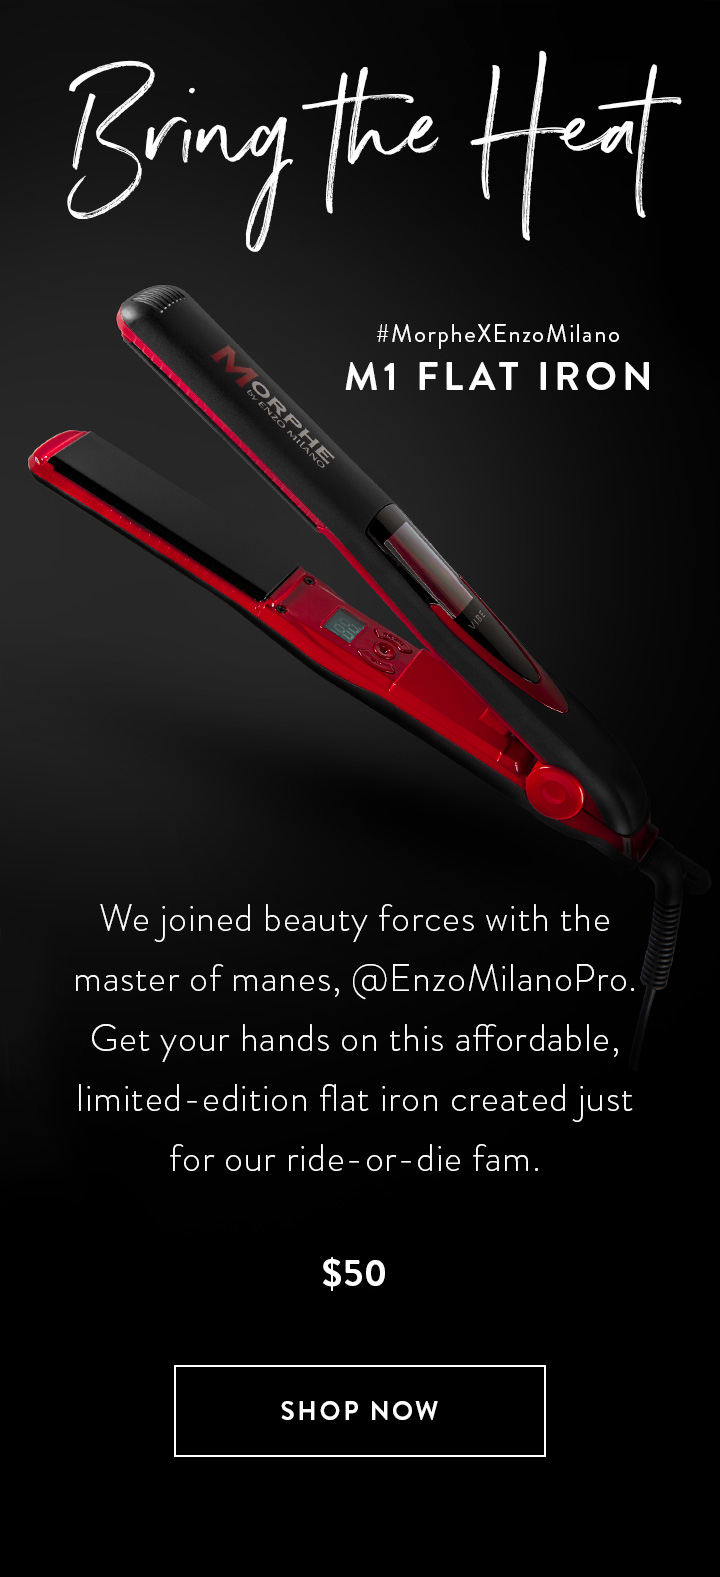 Morphe Flat Iron Up To 74 Off Free Shipping Remember to paste code when you check out. morphe flat iron up to 74 off free